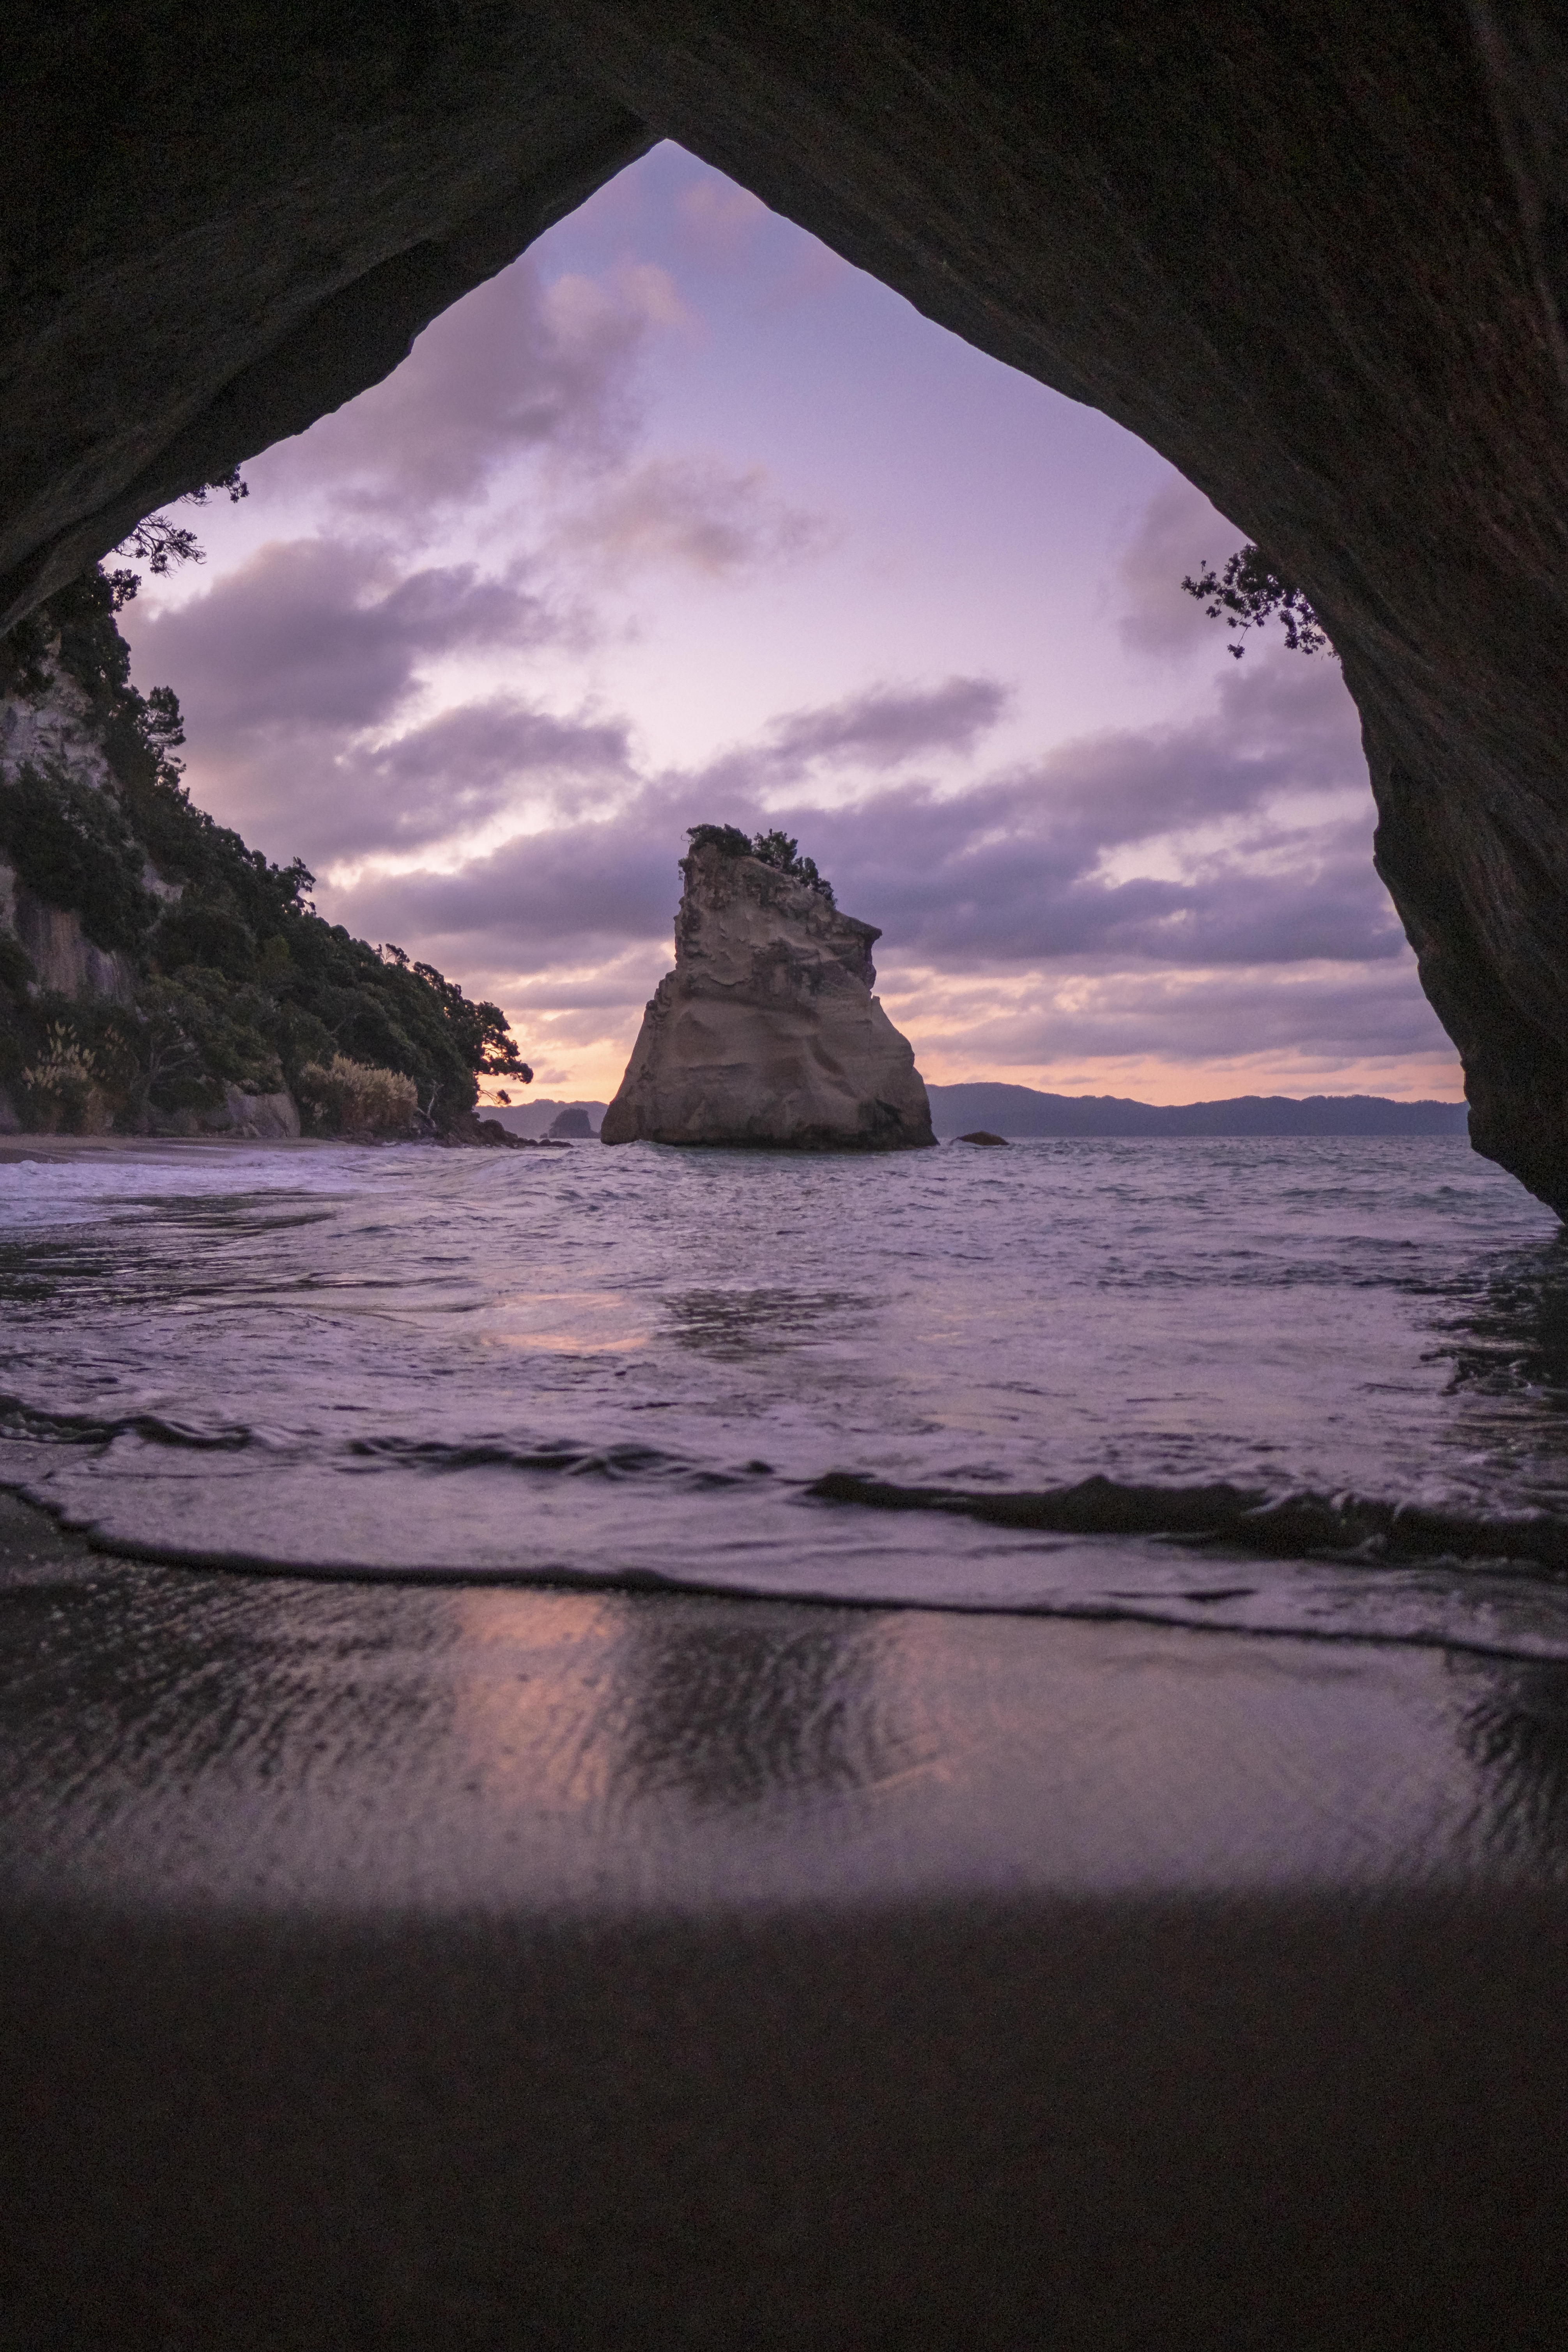 brown cave in front of shoreline